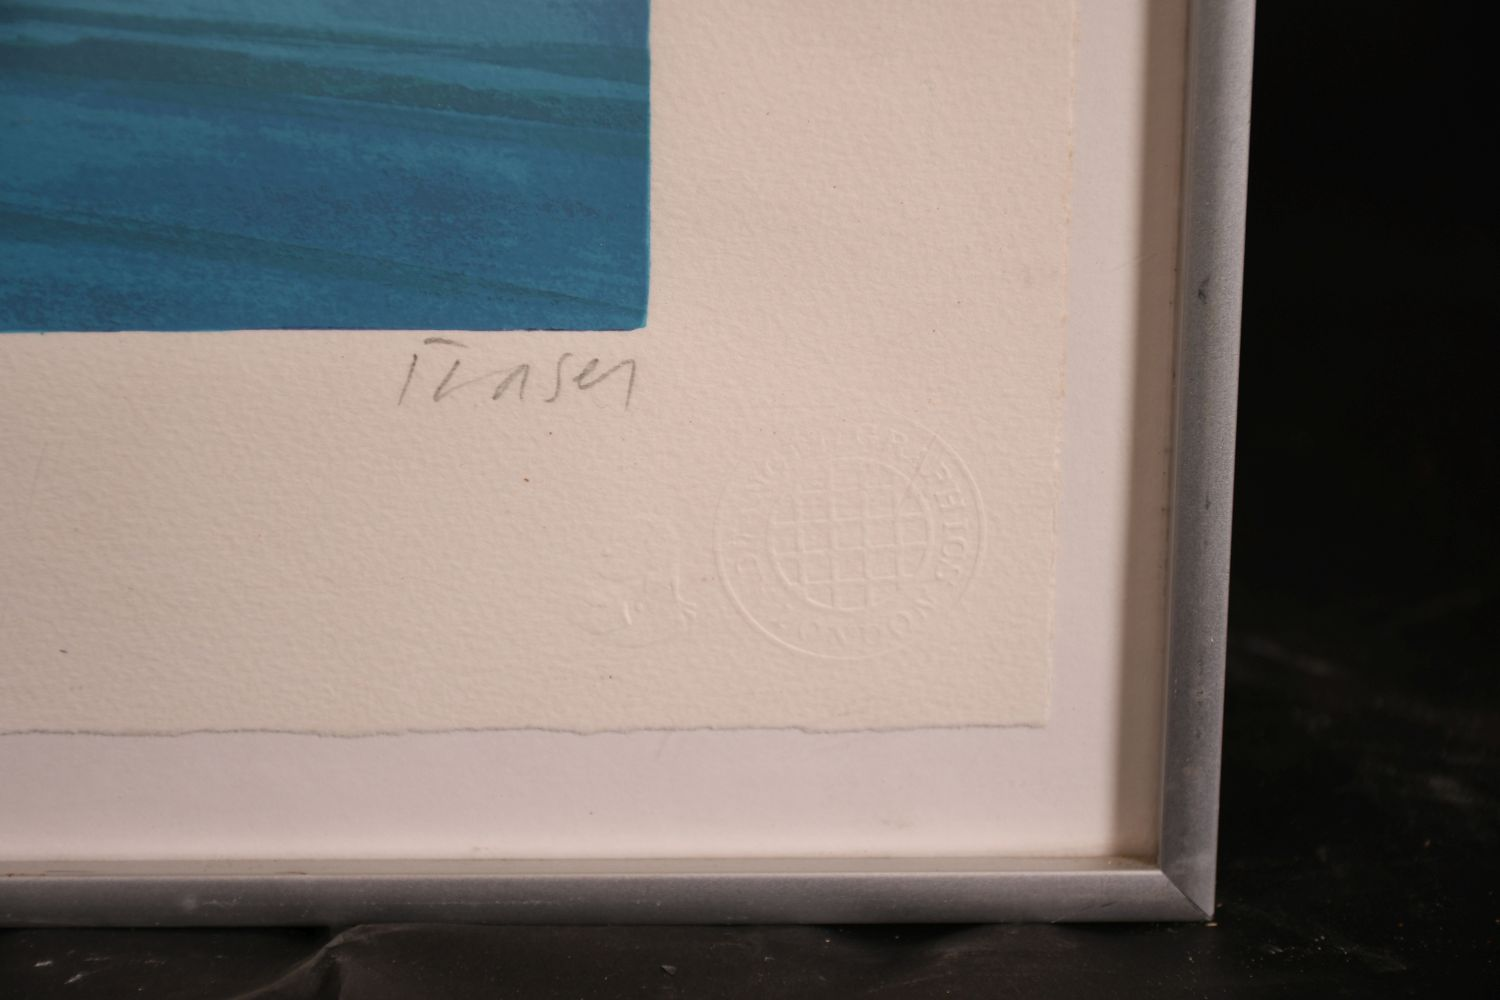 Donald Hamilton Fraser - Limited Edition Screenprint, 'Still Life Toys', Signed & Numbered in - Image 3 of 4